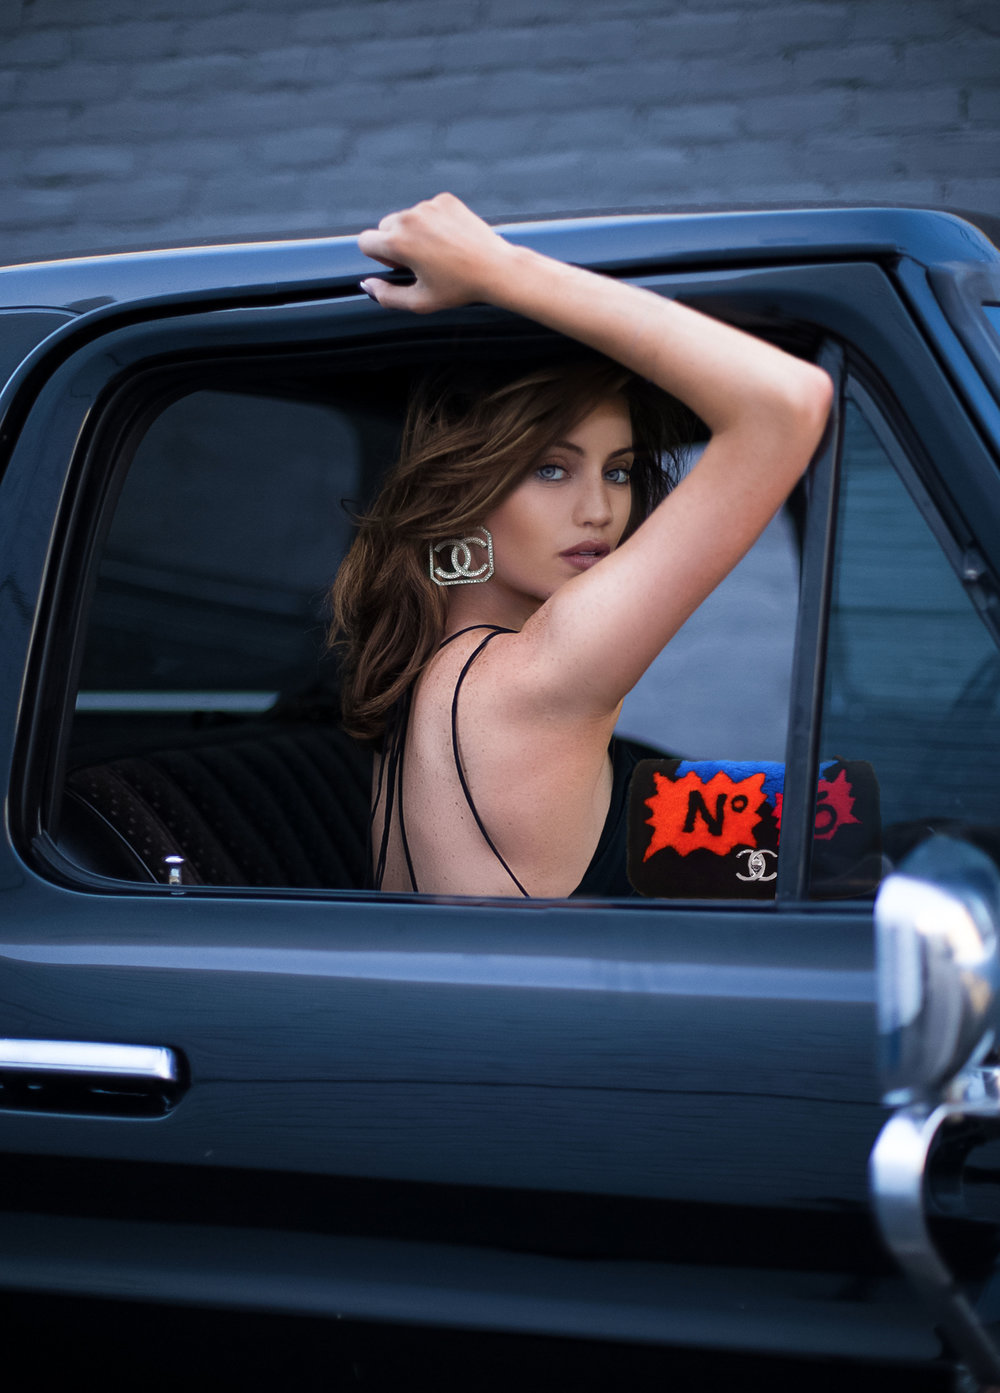 BLOGGER MAUREEN KRAGT FROM MONACO, SHOOTING IN LOS ANGELES. HANGING IN A 1960's black  #ford pick up truck on melrose.   I AM WEARING:   CHANEL  EARRINGS AND HANDBAG  SKIN PERFECTION Collagen Renew Pills IOMA  @ioma_paris  SKIN CARE Face Mask Rreshmade Watermelon Mask SKINFOOD  @skinfood_official   MAKE UP FONDATION Bb Mate Contouring 123 Kit BB DR.JART+ @drjart  EYESHADOW Saint + Sinner Eyeshadow Palette de 24 fards à paupières KAT VON D  @katvondbeauty  EYEBROW Brow Wiz + Brow Primer + Brow Powder Duo + Highlighting Duo Pencil ANASTASIA BEVERLY HILLS  @anastasiabeverlyhills  (see video - swipe right) MASCARA Velvet Noir Mascara Volume Spectaculaire MARC JACOBS BEAUTY  @marcbeauty  LIPSTIK Audacious Lipstick - Anna NARS  @narsissist  HAIRCARE Shampoo No.2 LE VOLUME + Mask No.2 LE VOLUME + Volume Powder DAVID MALLETT PARIS  @davidmallett   TATTOOS Semi-Permanent Ink INKBOX  @inkbox  PRODUCTS VIDEO Derma blend VICHY@vichy_fr  @vichyusa (see video - swipe right) Moon Mousse Make Up Repair  @moonmousse (see video - swipe right)  LOCATION 1960's black  #ford pick up truck, shot in  #LA   #ink  #inkedgirls  #tatoo  #liontattoo  #lion